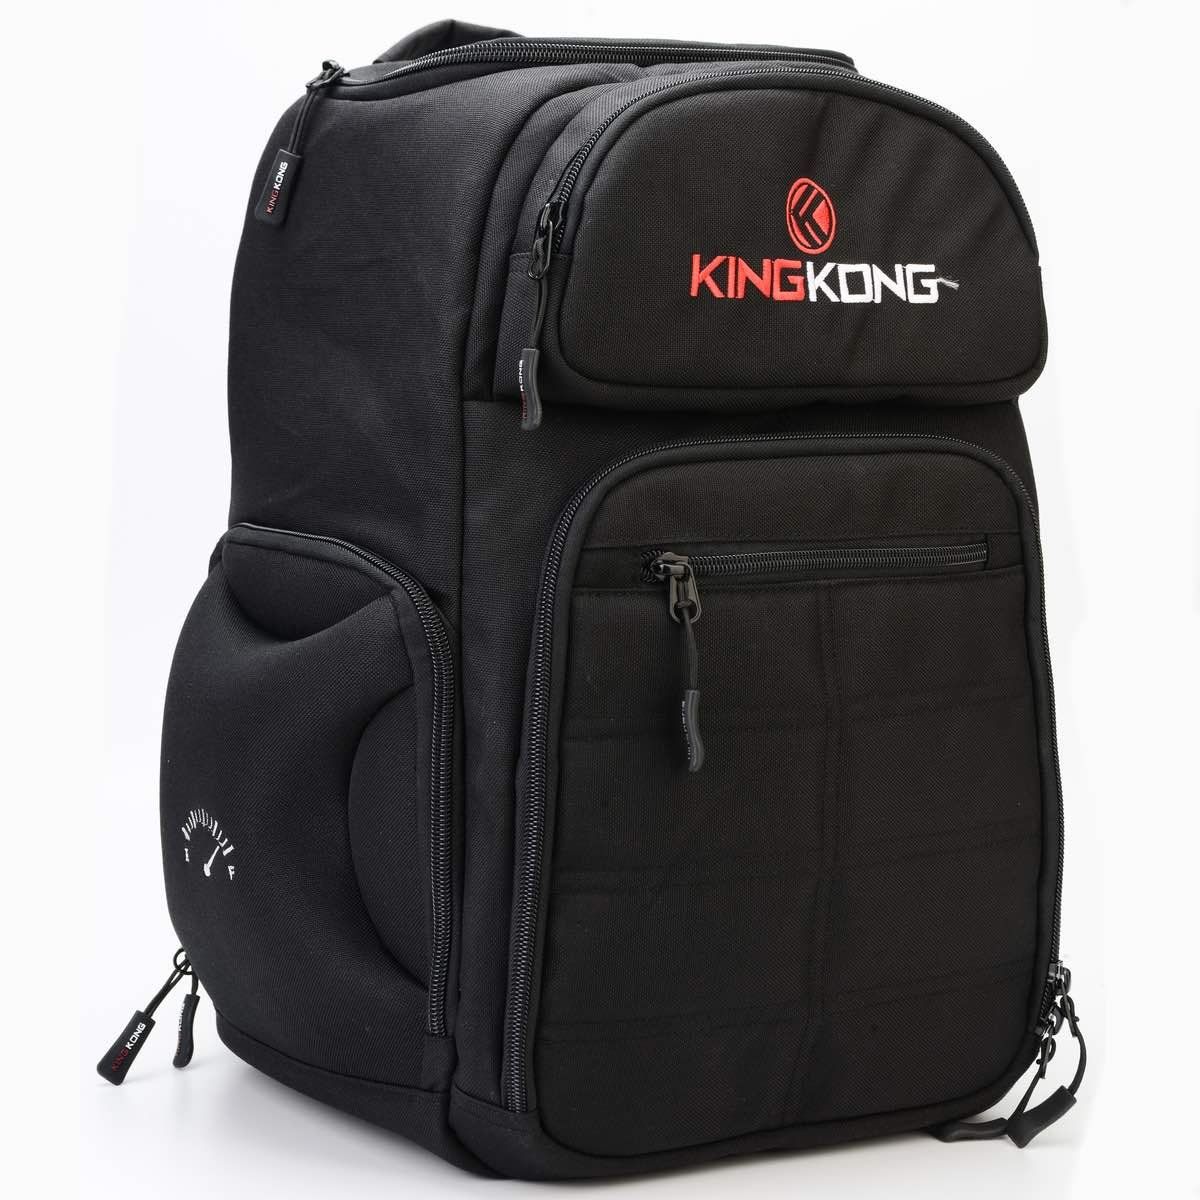 King Kong Fuel Meal Prep Backpack - Insulated Thermal Polyester Lunch Bag, Military Spec Nylon with Two Reusable Ice Packs - Black by King Kong (Image #7)